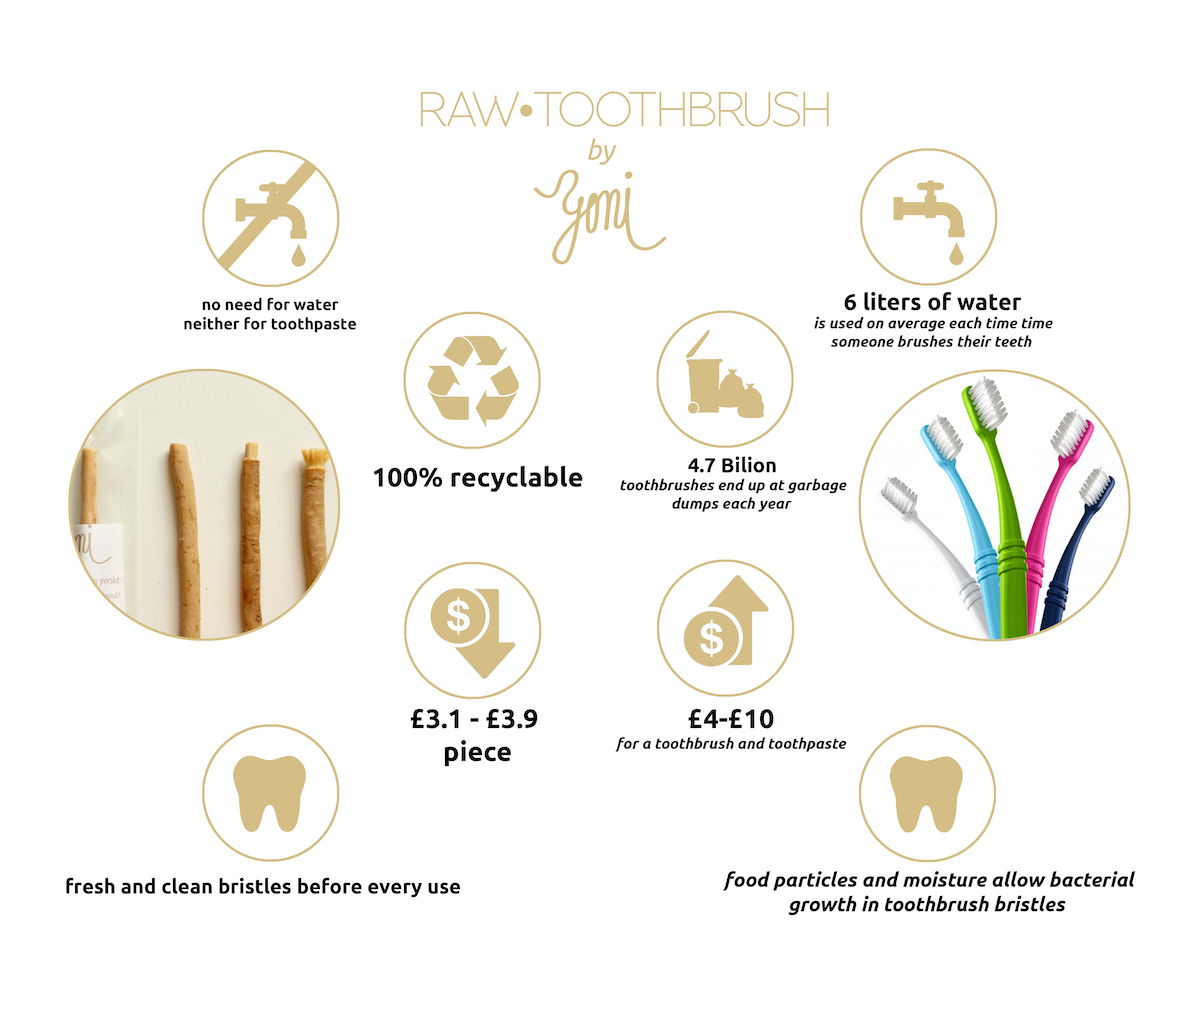 ecological footprint of rawtoothbrush by yoni